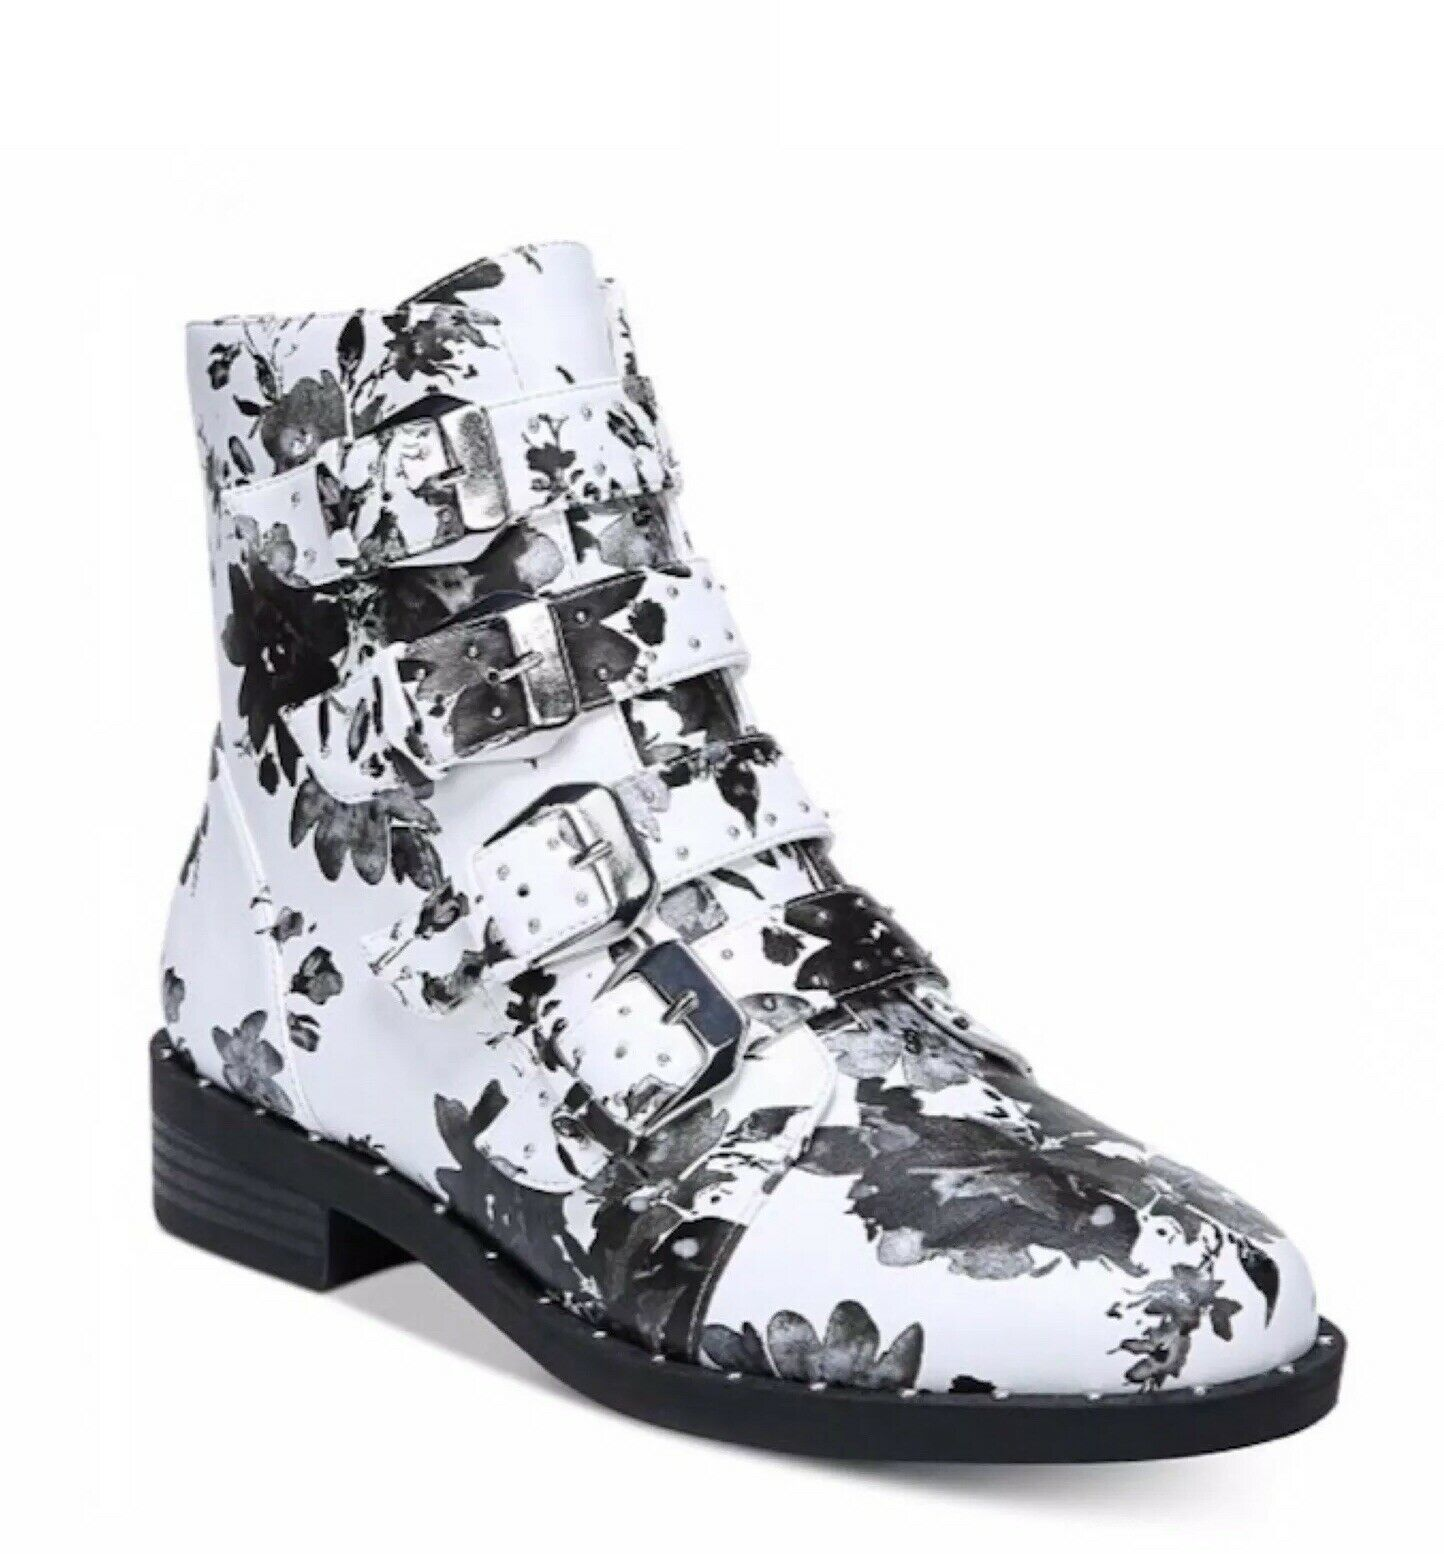 Bar III Womens Black White Floral Buckle Studded Combat Ankle Boots 9 NEW